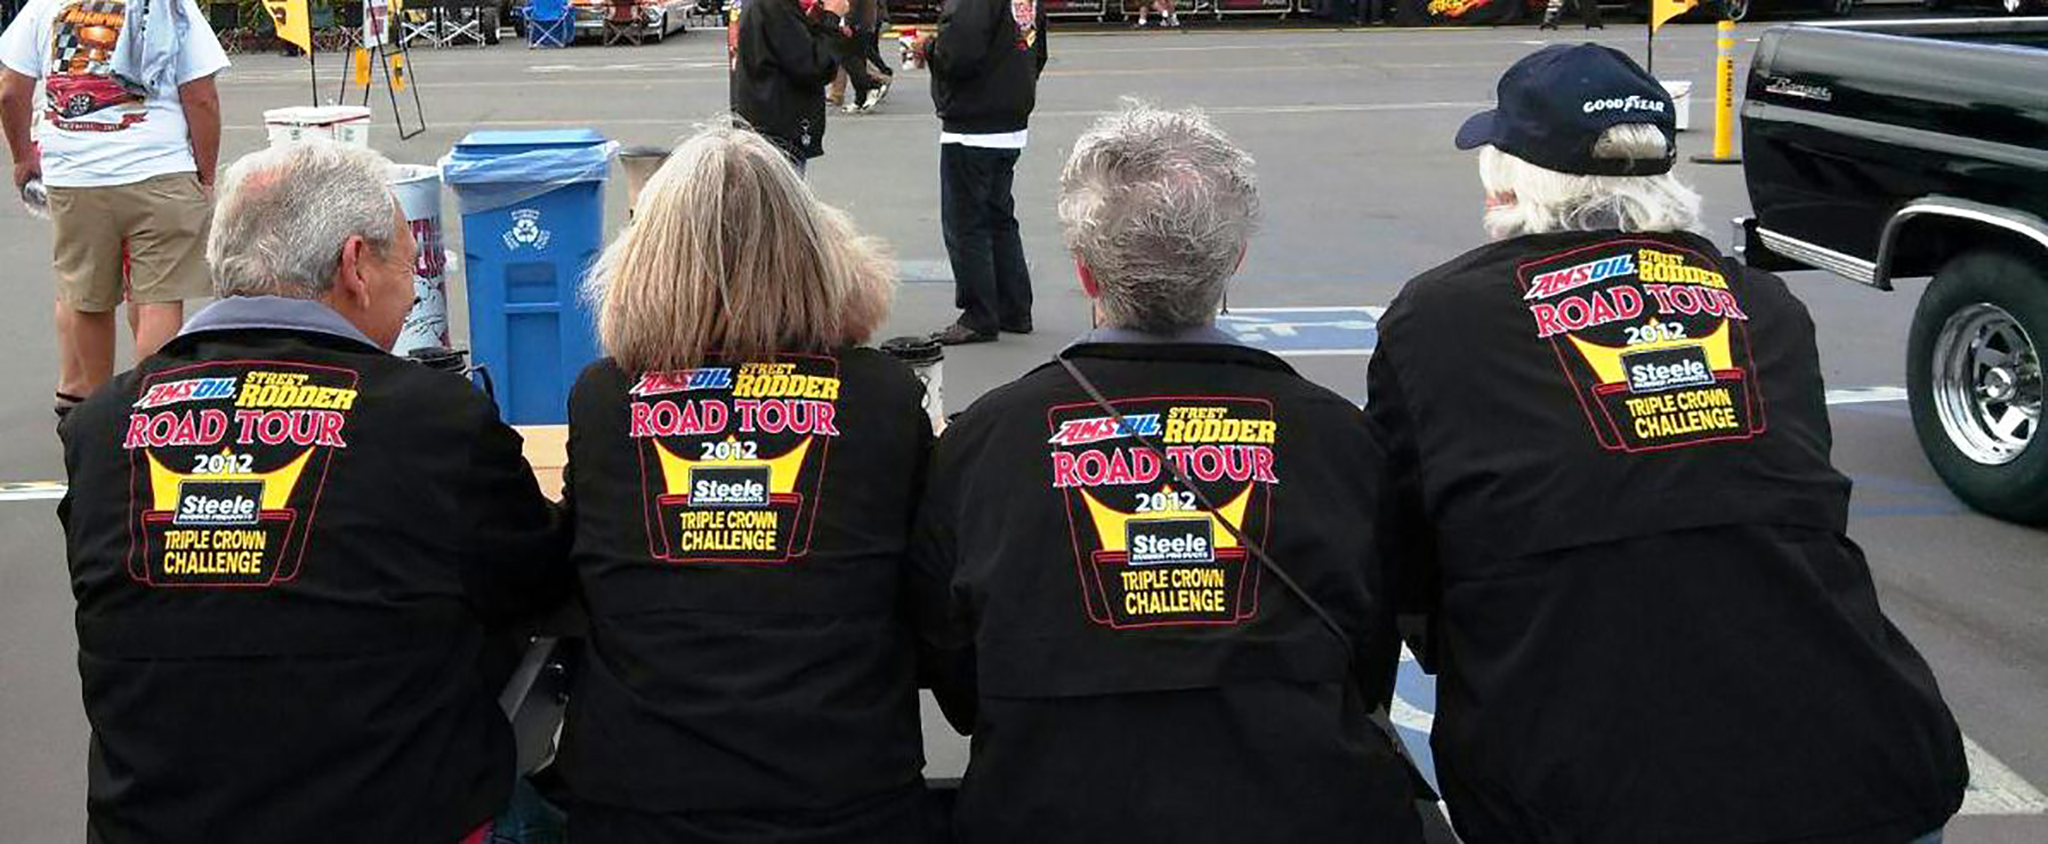 The folks that complete the Triple Crown Challenge receive a jacket to commemorate their efforts. They wear the jackets with justifiable pride knowing that they are a part of a small group of road warriors.